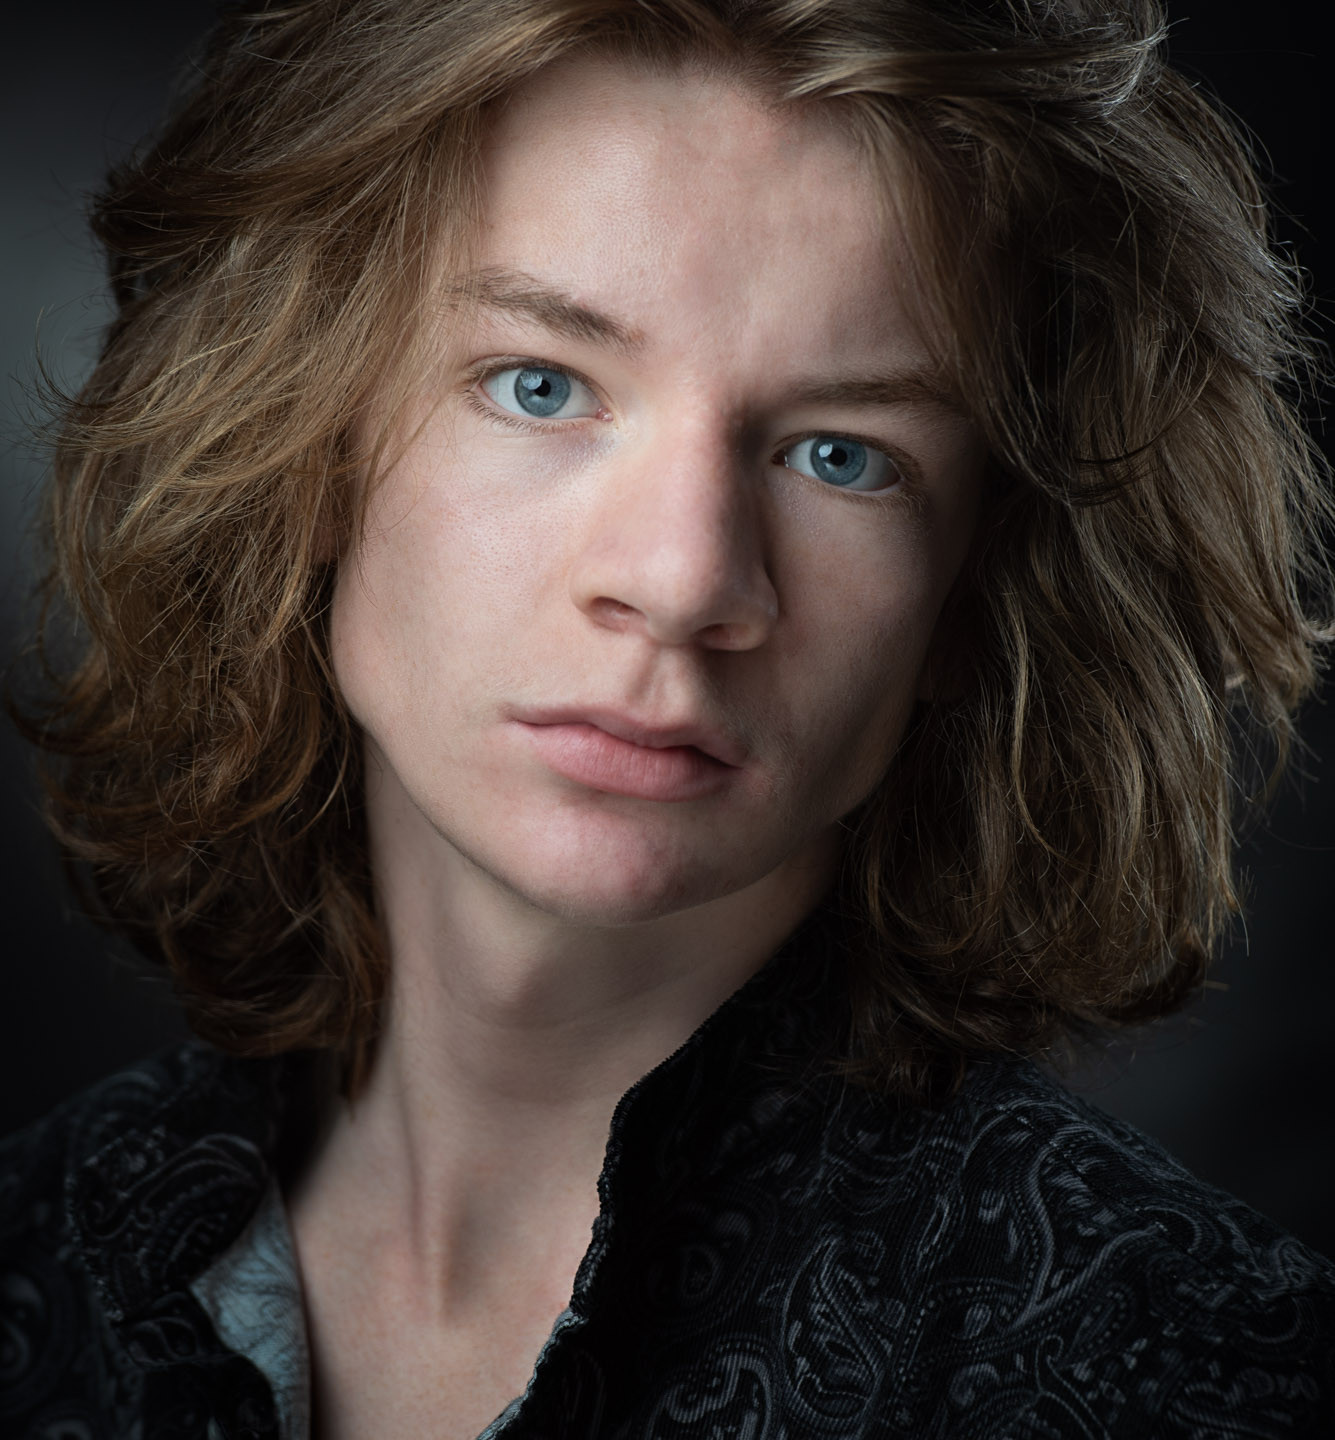 Actors Headshot, moody close up of a young performer with thick long brown hair and blue eyes on dark background